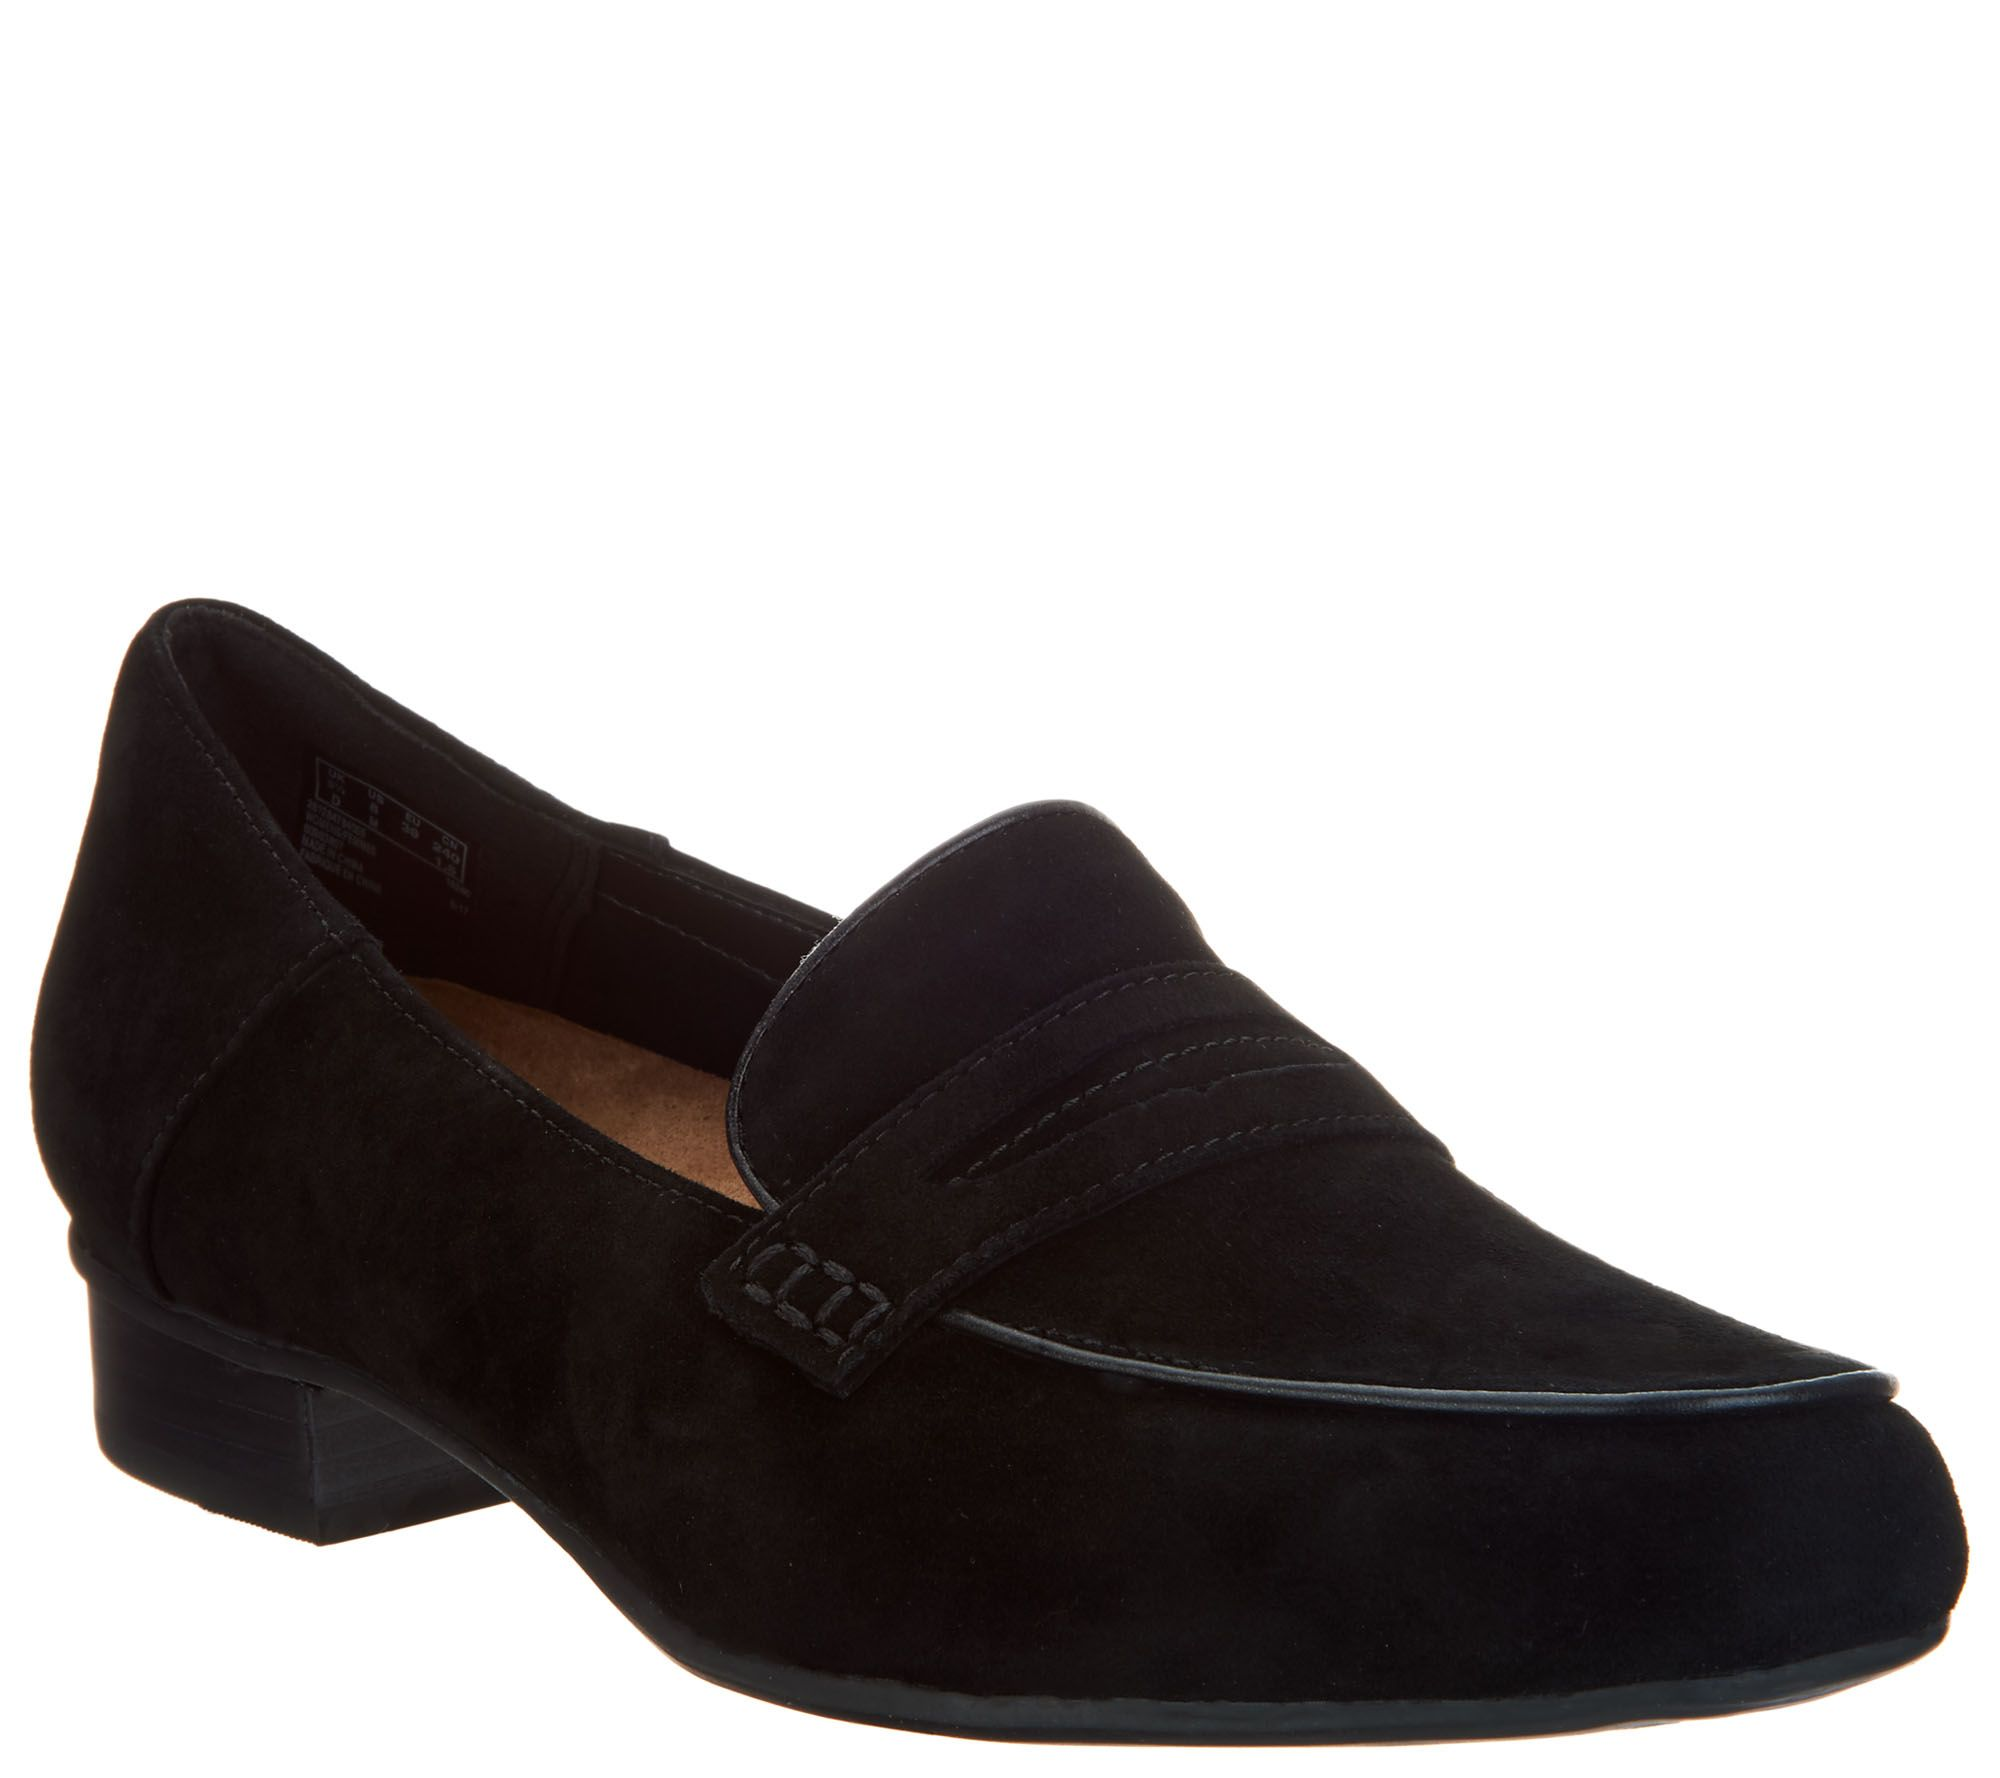 b22be8c5960 Clarks Artisan Suede Heeled Loafers - Keesha Cora - Page 1 — QVC.com